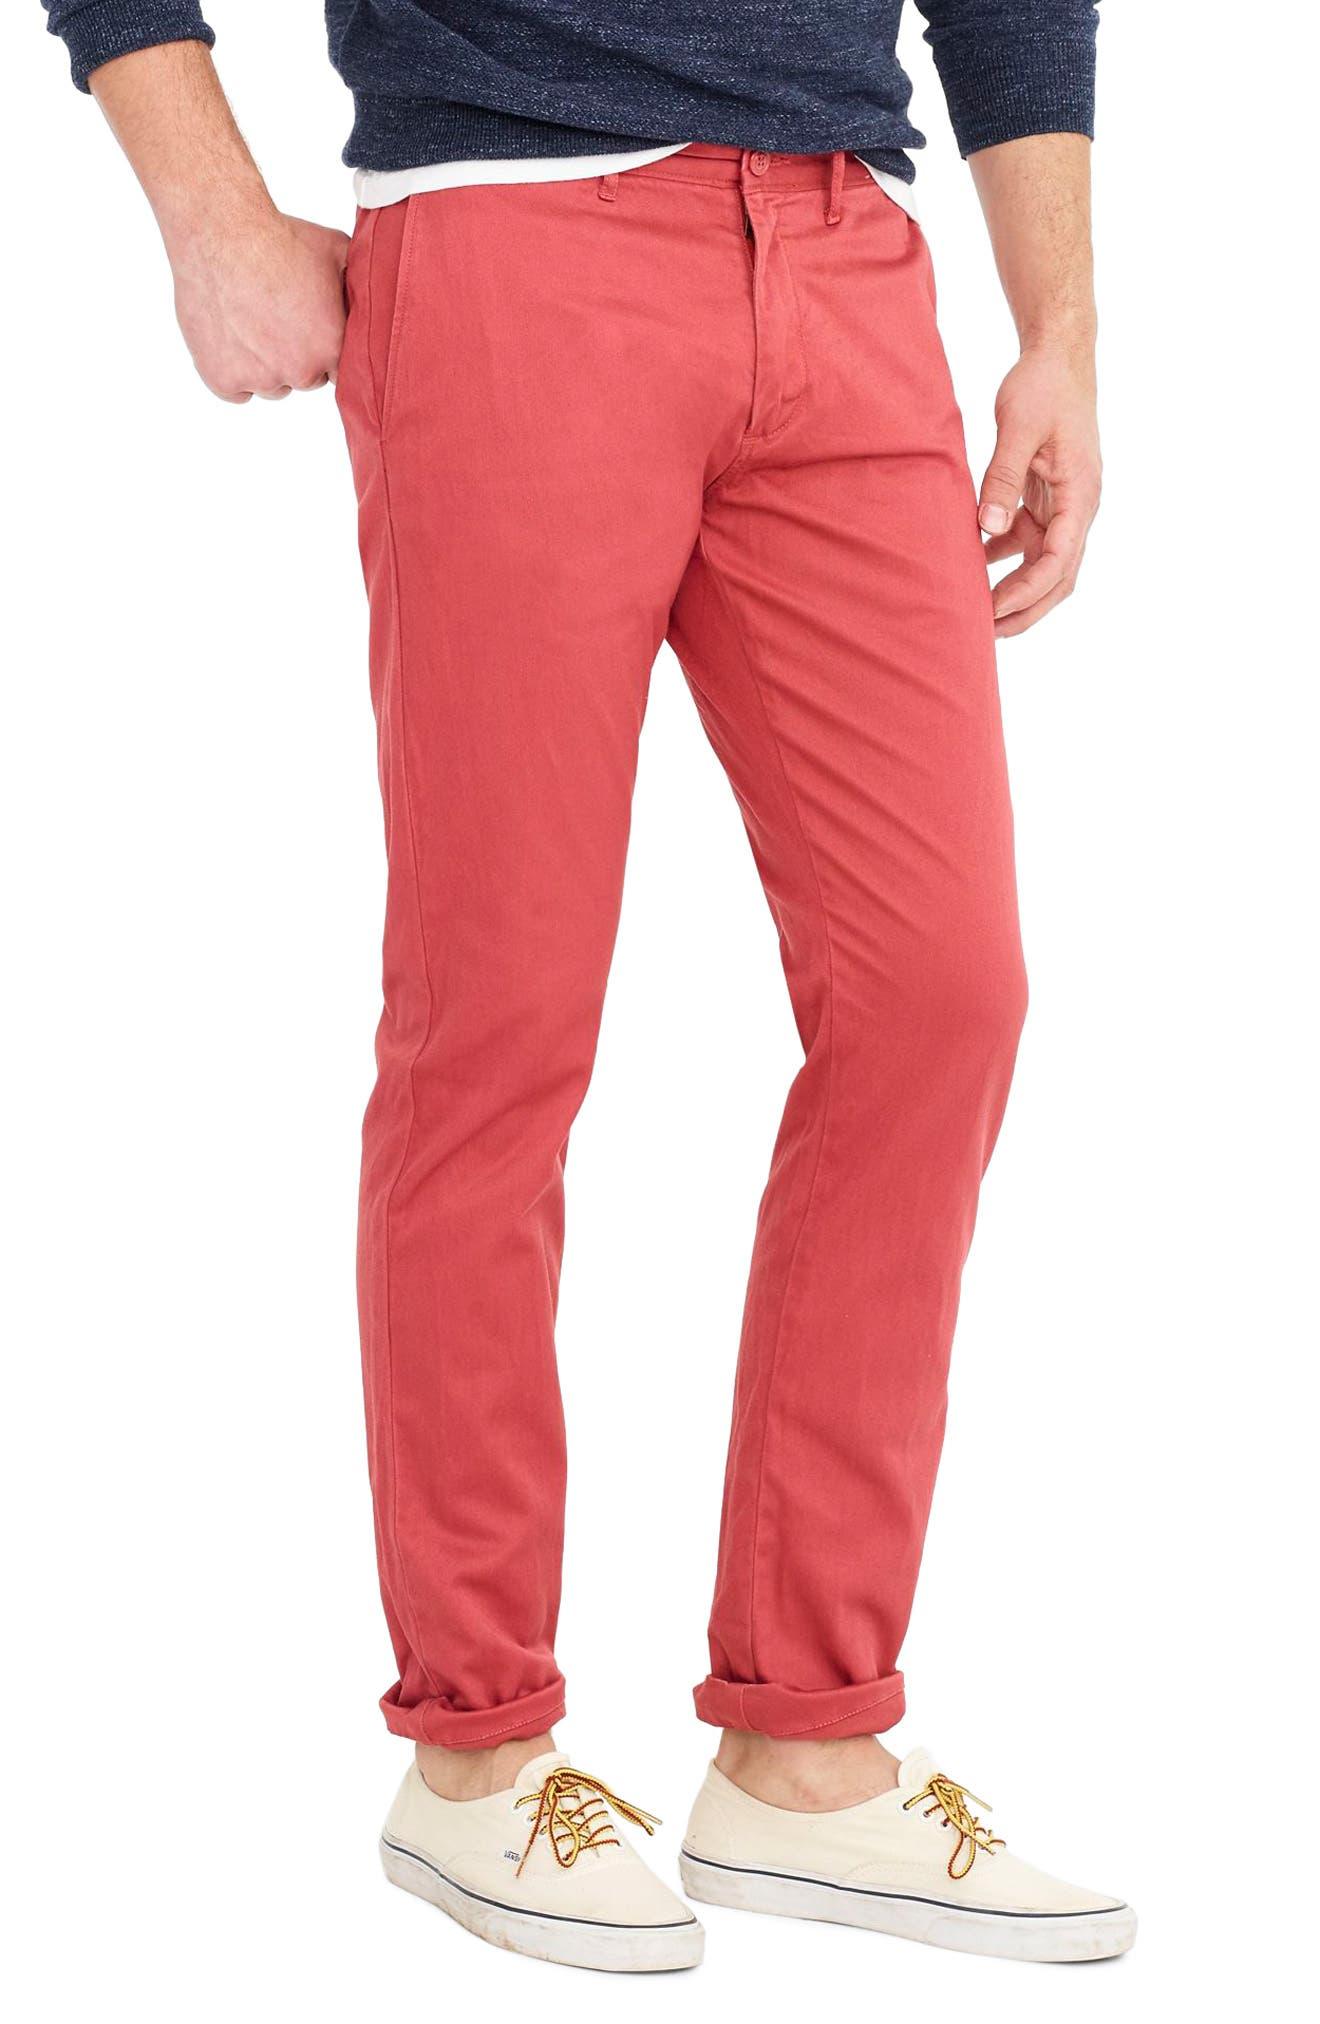 484 Slim Fit Stretch Chino Pants,                             Alternate thumbnail 33, color,